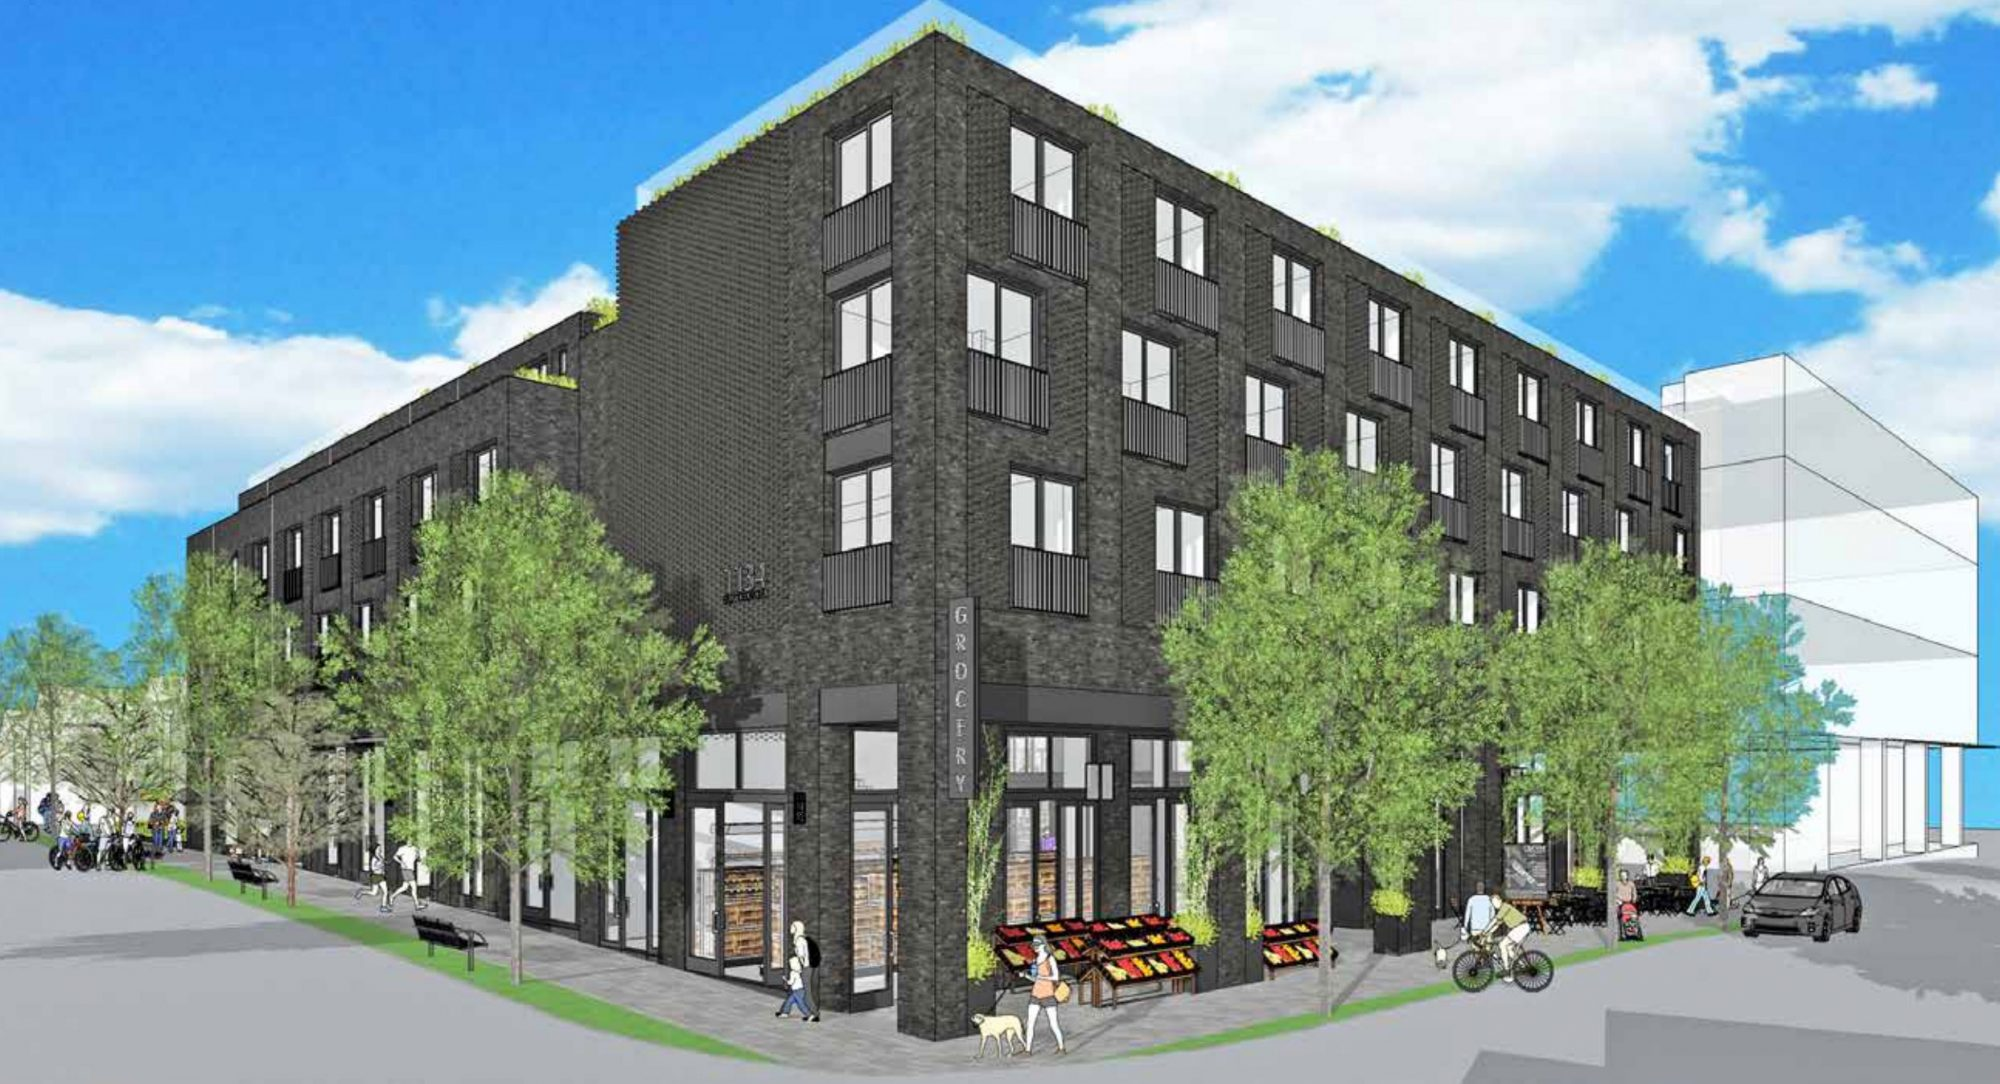 New family-oriented housing proposed for Strathcona